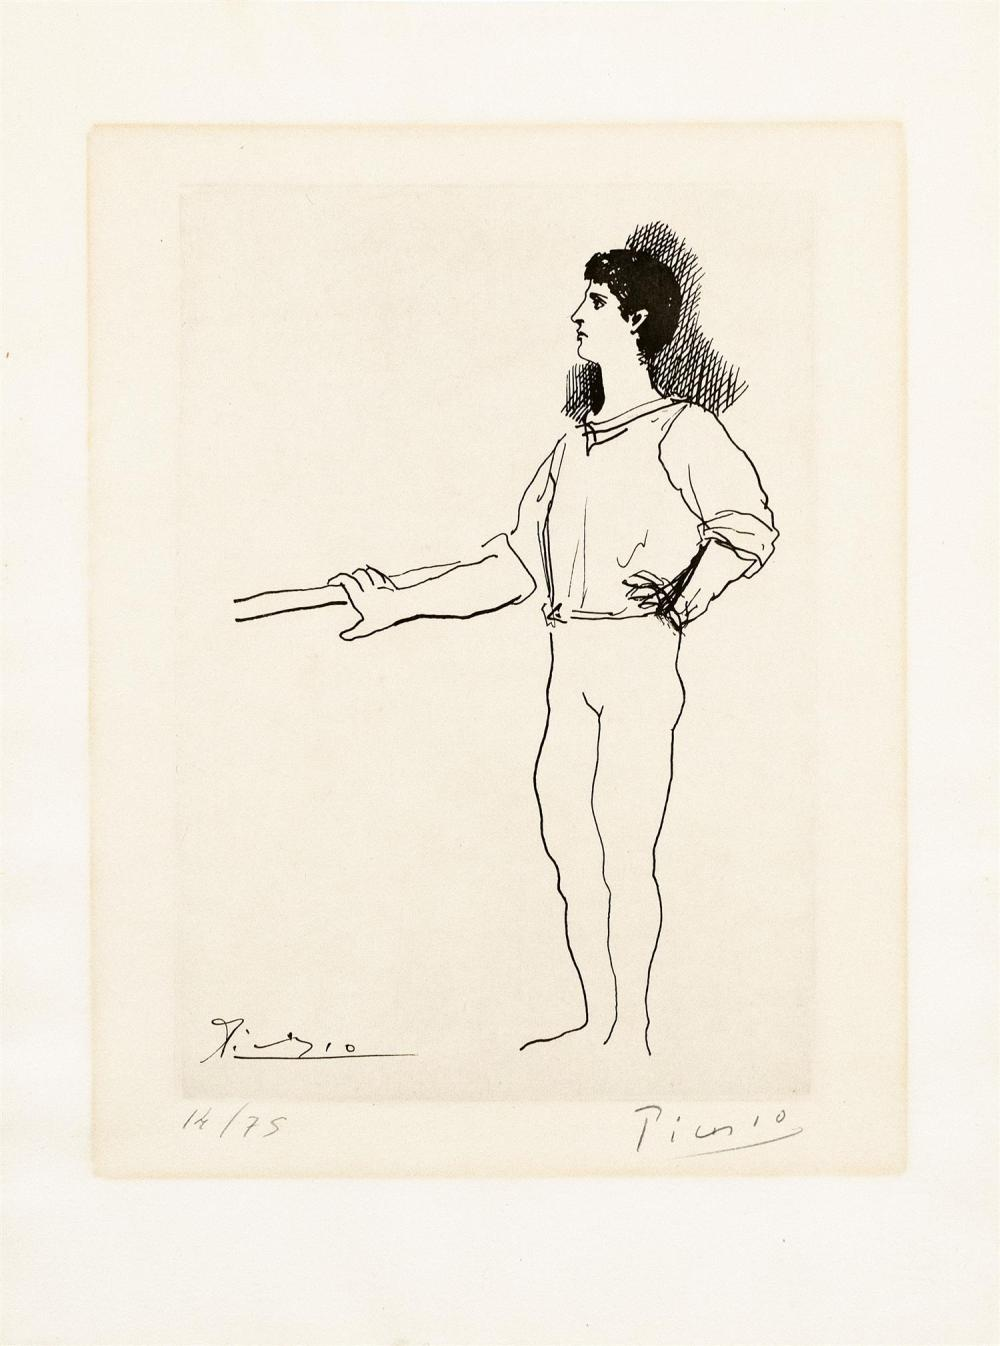 """PABLO PICASSO, Spain/France, 1881-1973, Ballet dancer at the barre., Copperplate engraving on BFK Rives vellum paper, 10.5"""" x 7.25""""..."""